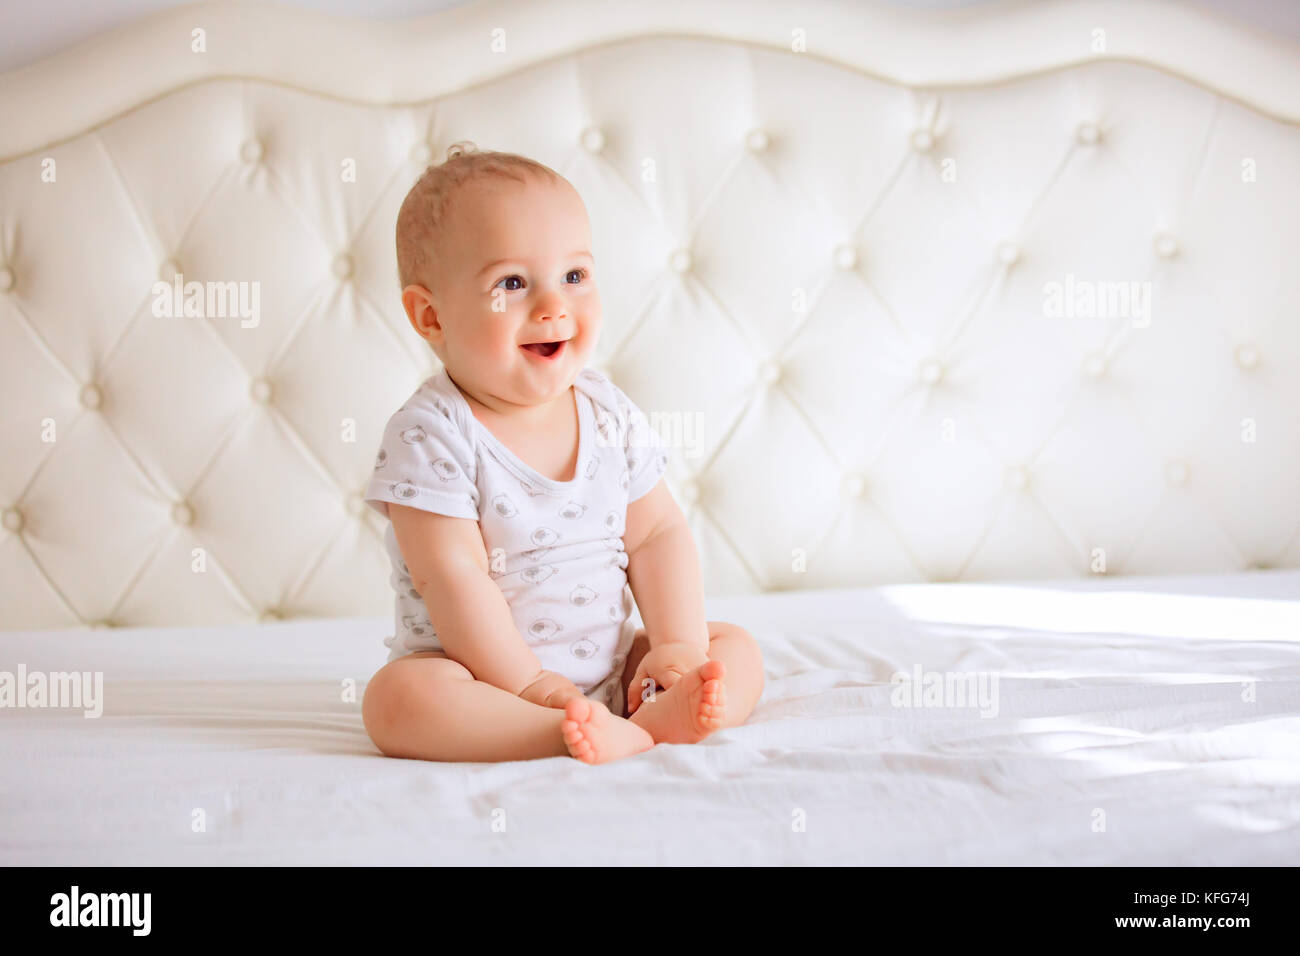 Adorable baby boy in white sunny bedroom. Newborn child relaxing in bed. Nursery for young children. Textile and - Stock Image